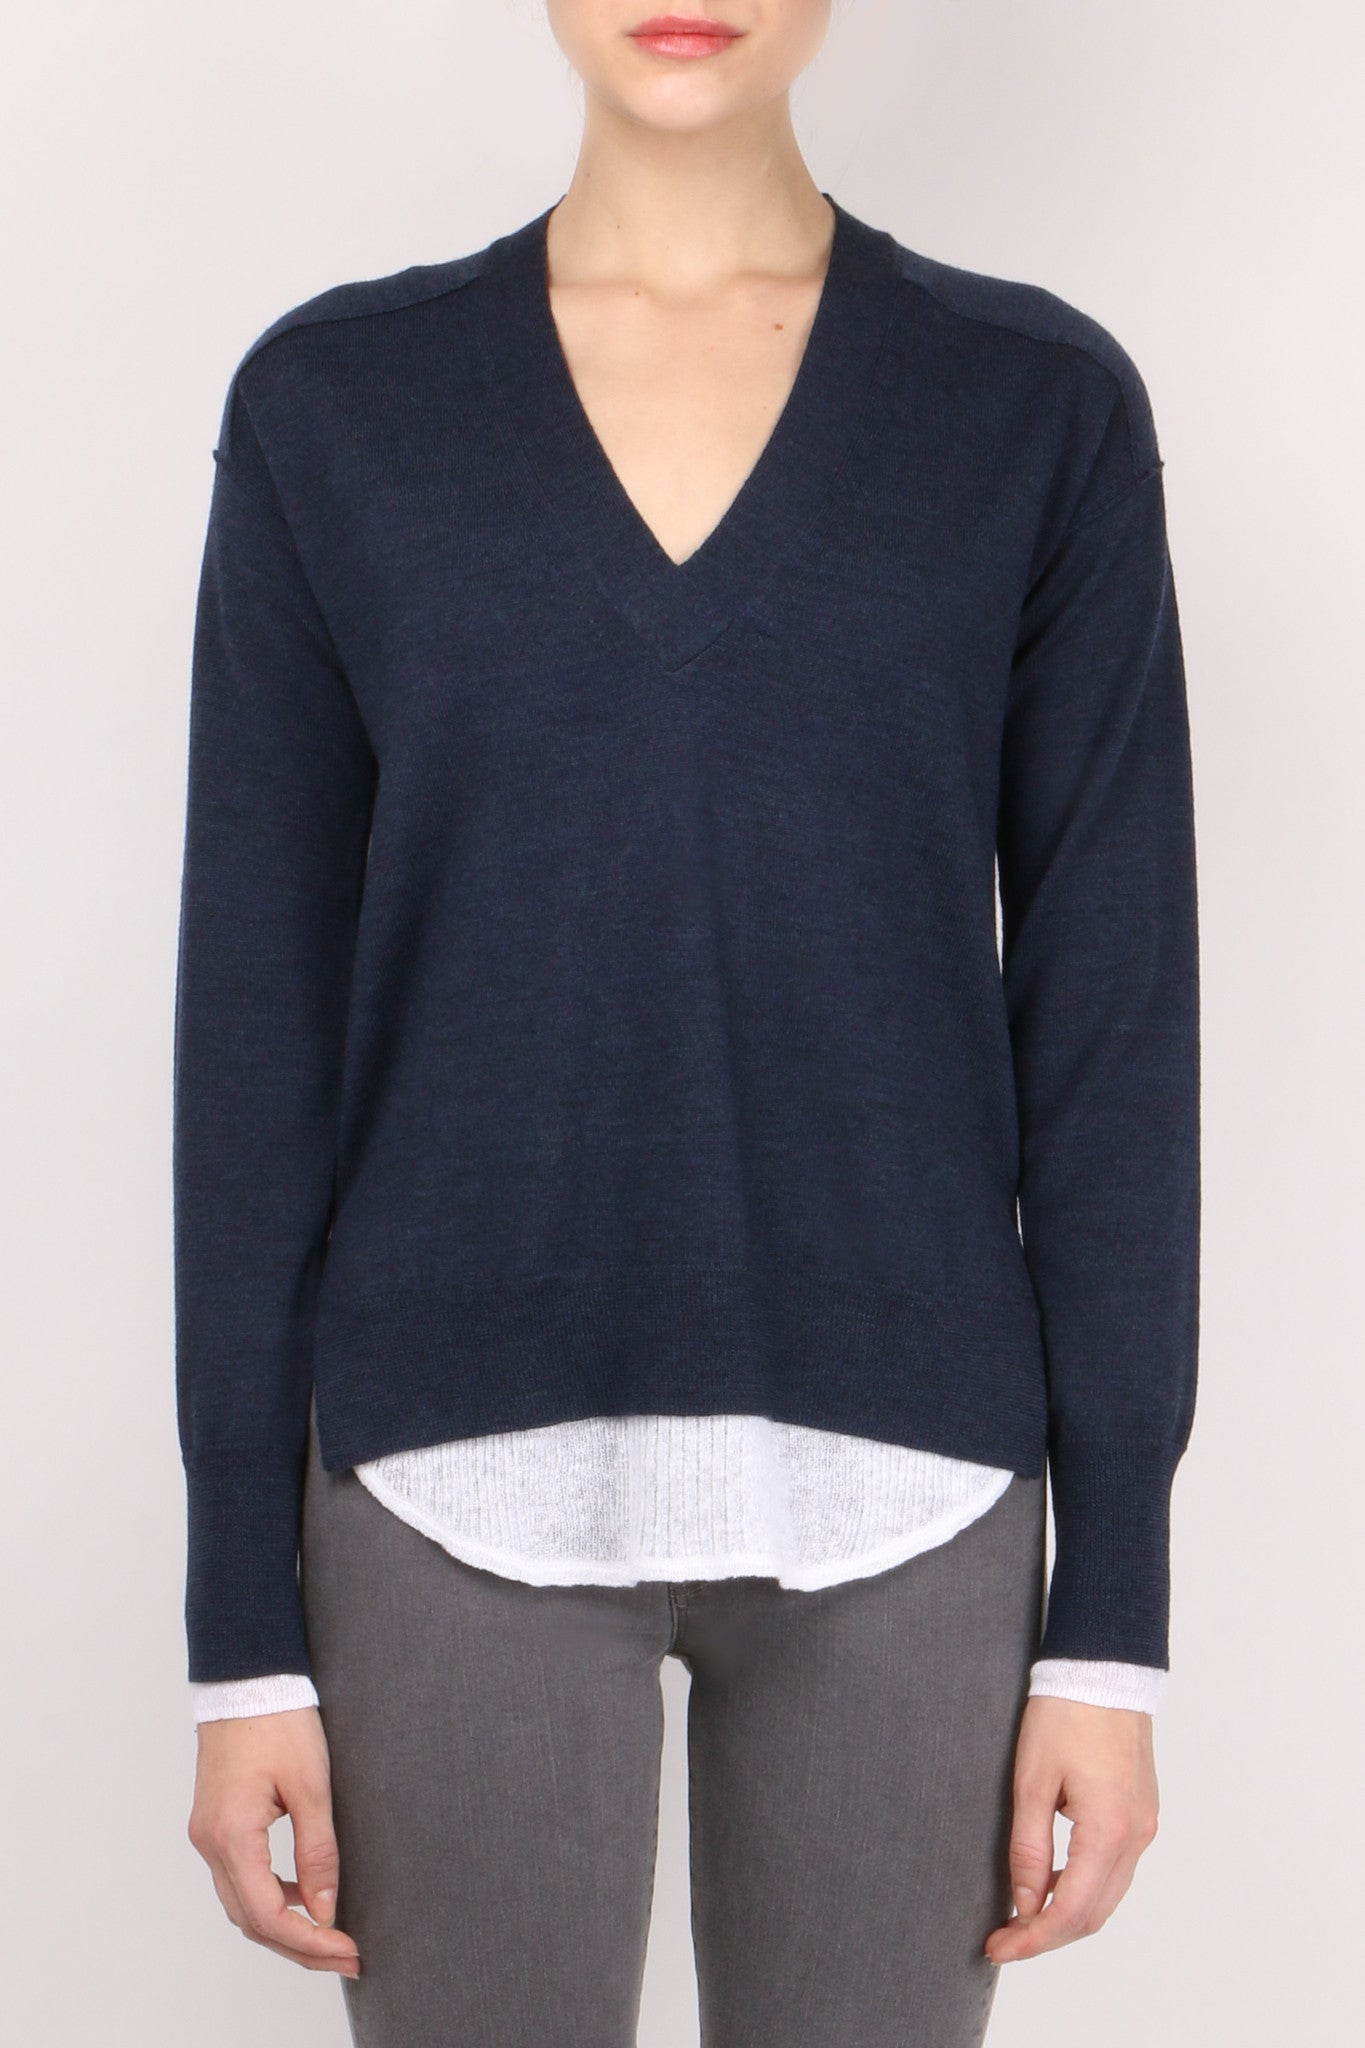 Cardwell Layered Pullover